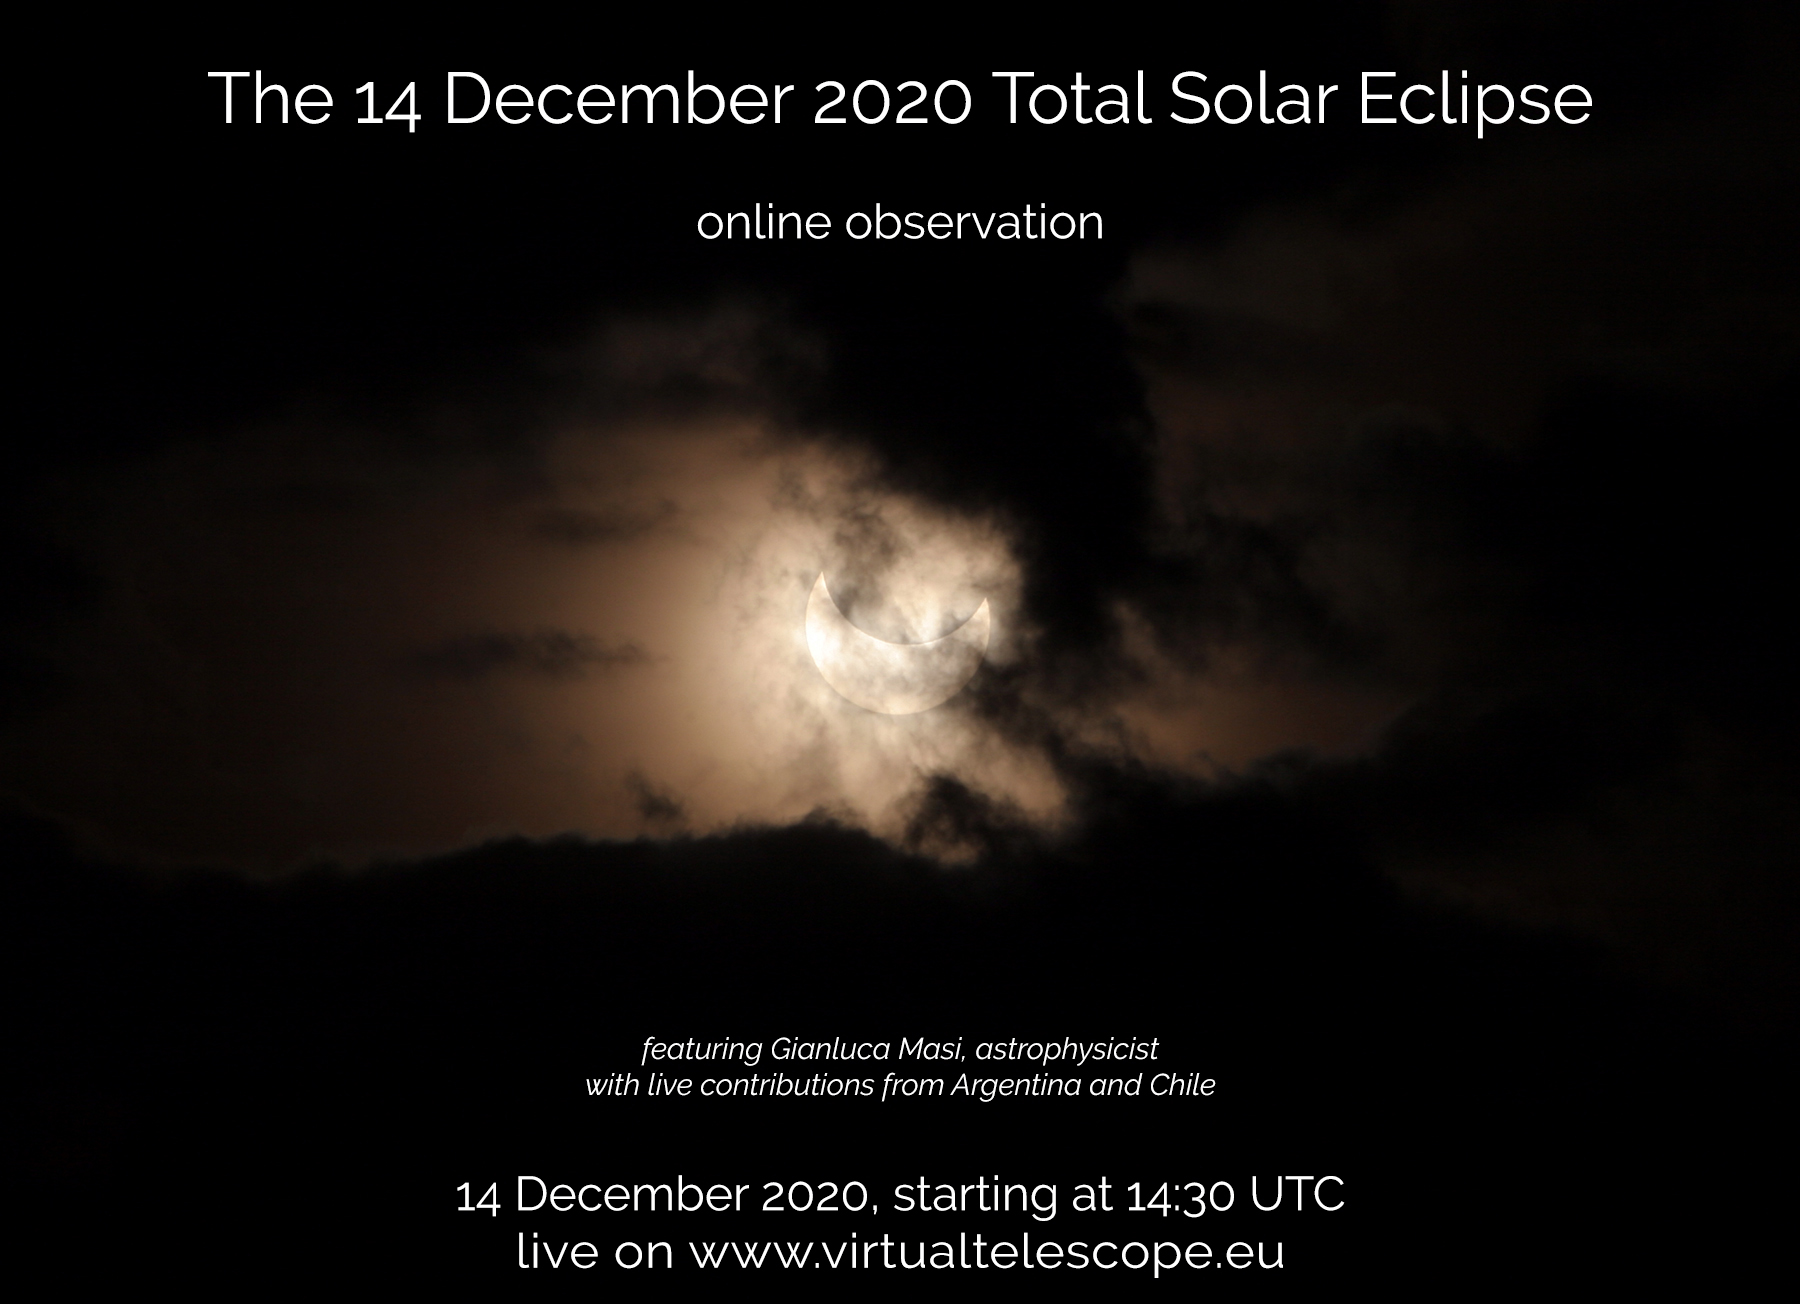 """14 December 2020 Total Solar Eclipse"" - poster of the event"